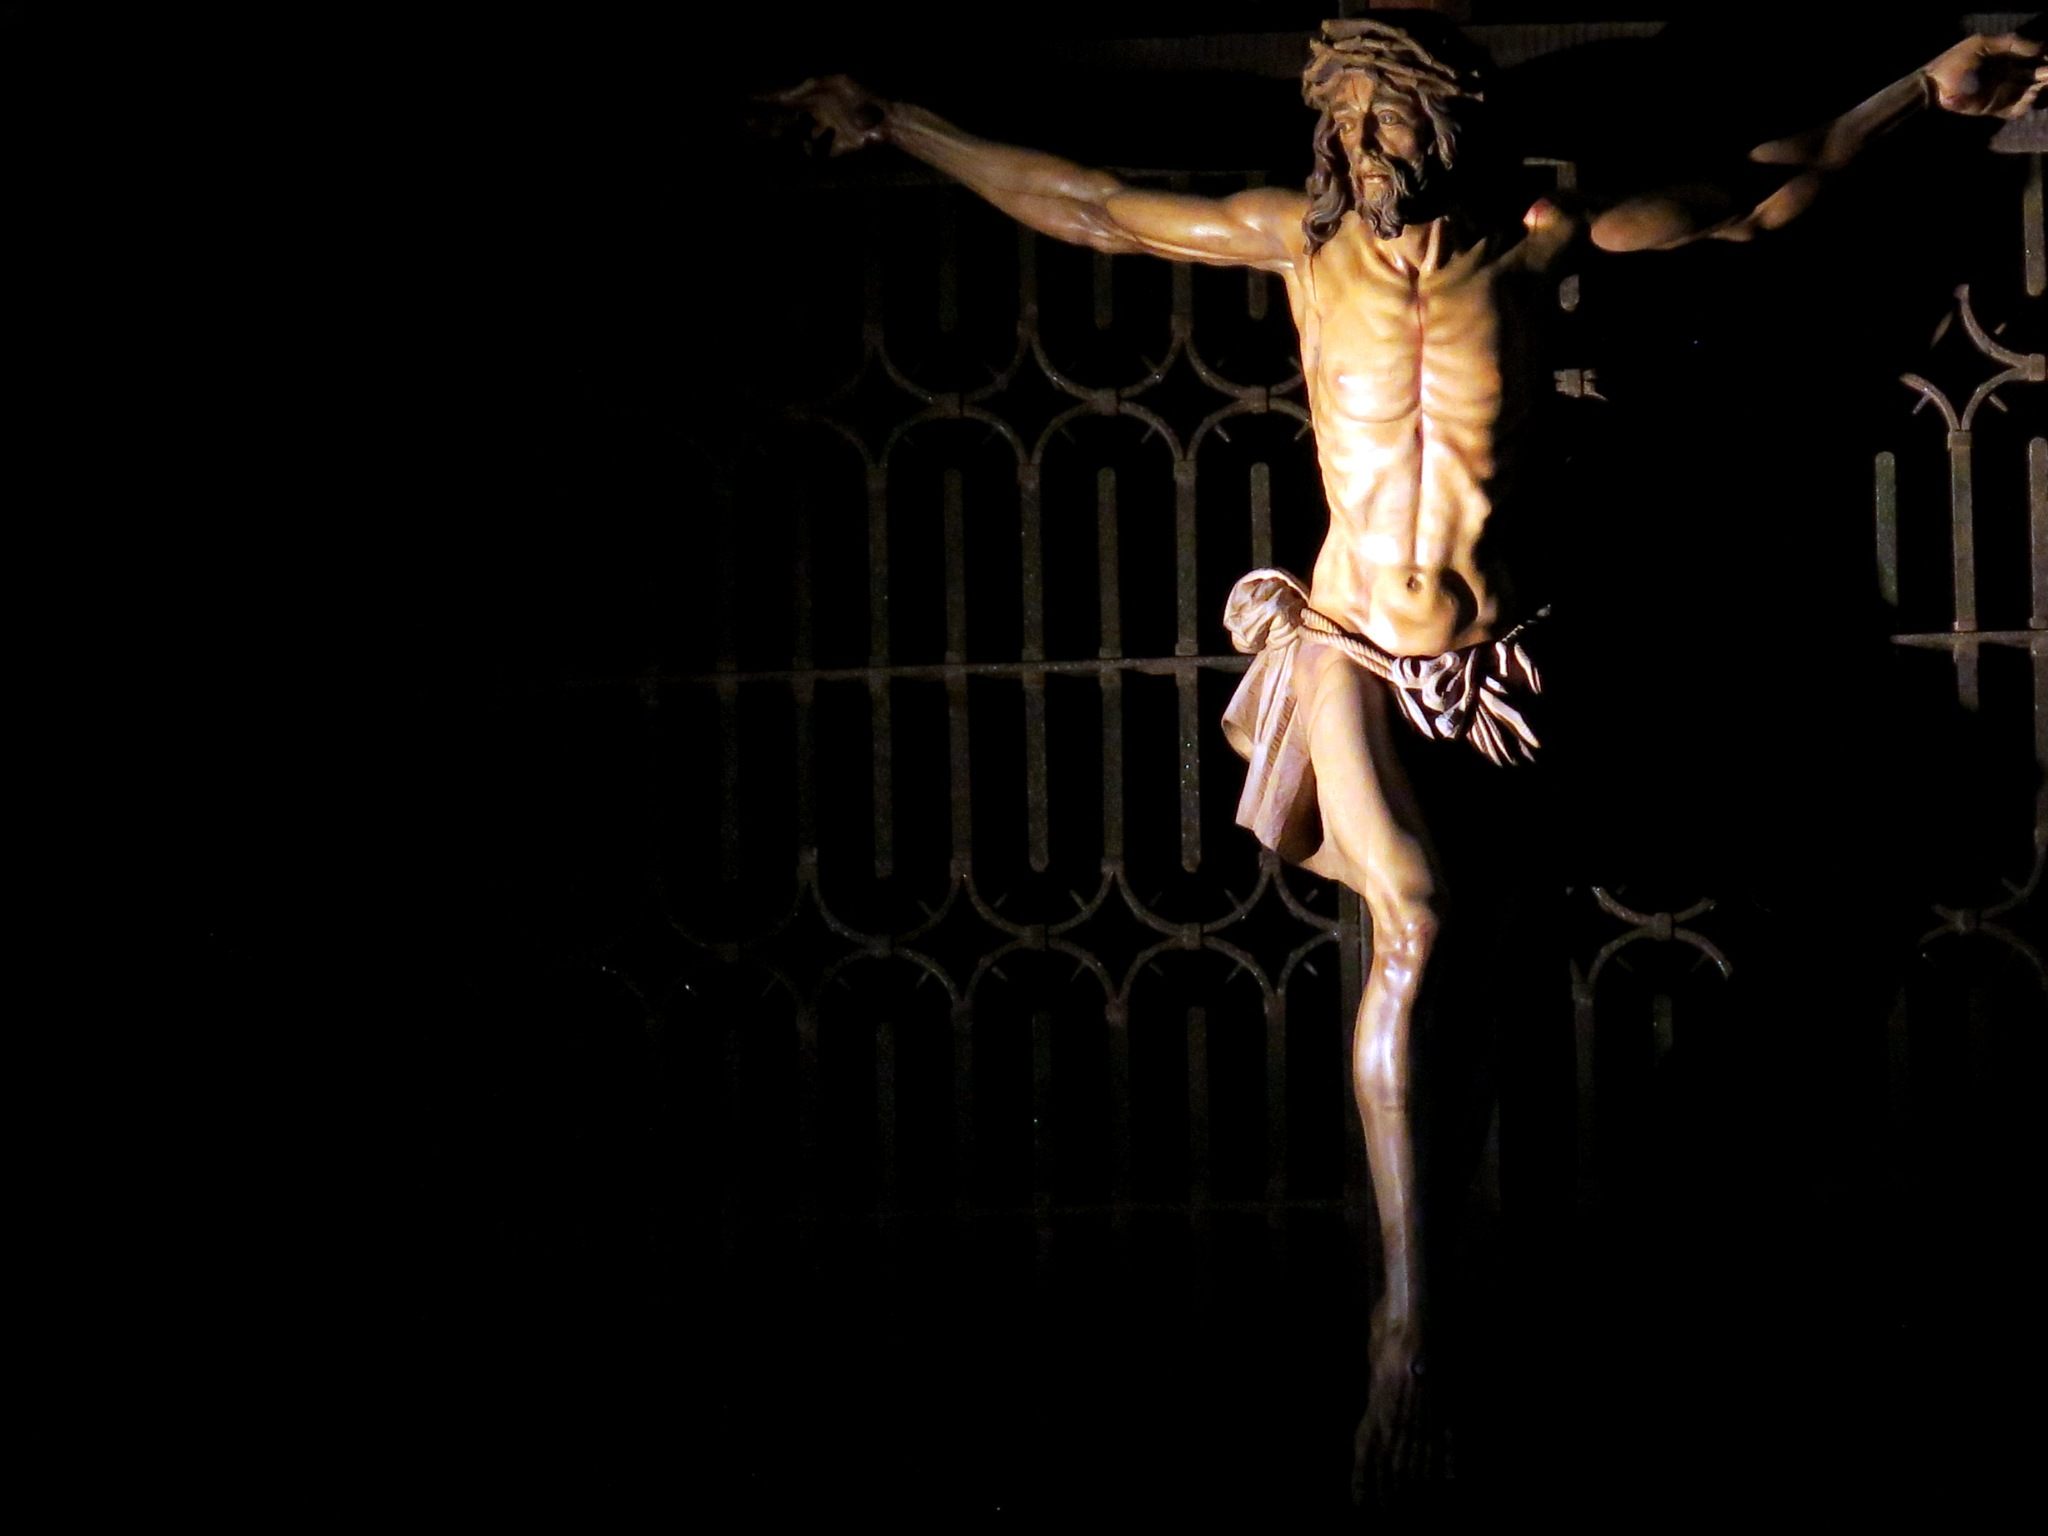 Crucificado by mmvicent